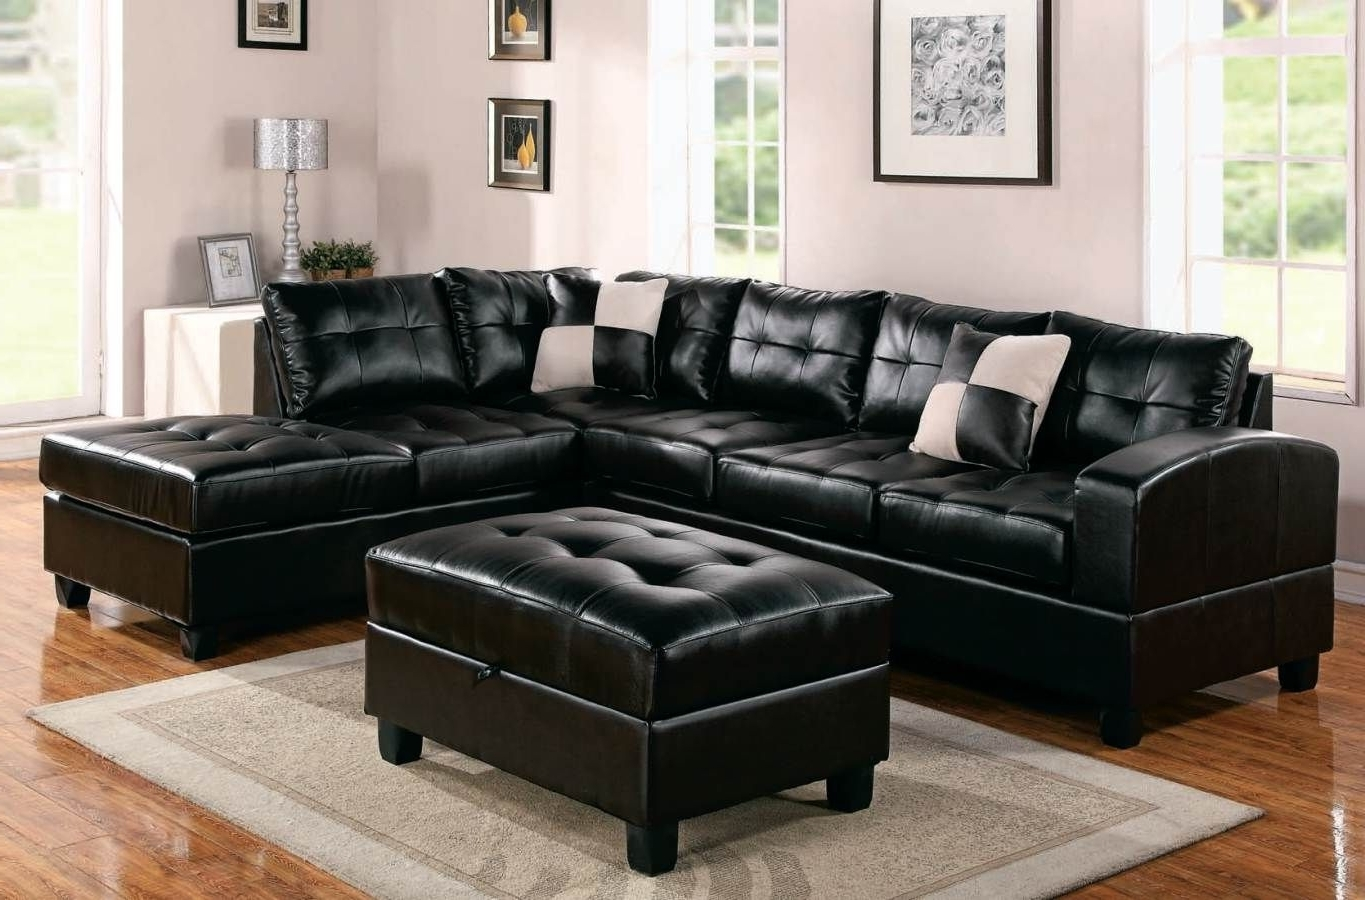 Black Leather Sectionals With Ottoman Inside Fashionable Oversized Black Leather Sectional Sofa With Tables (View 5 of 15)